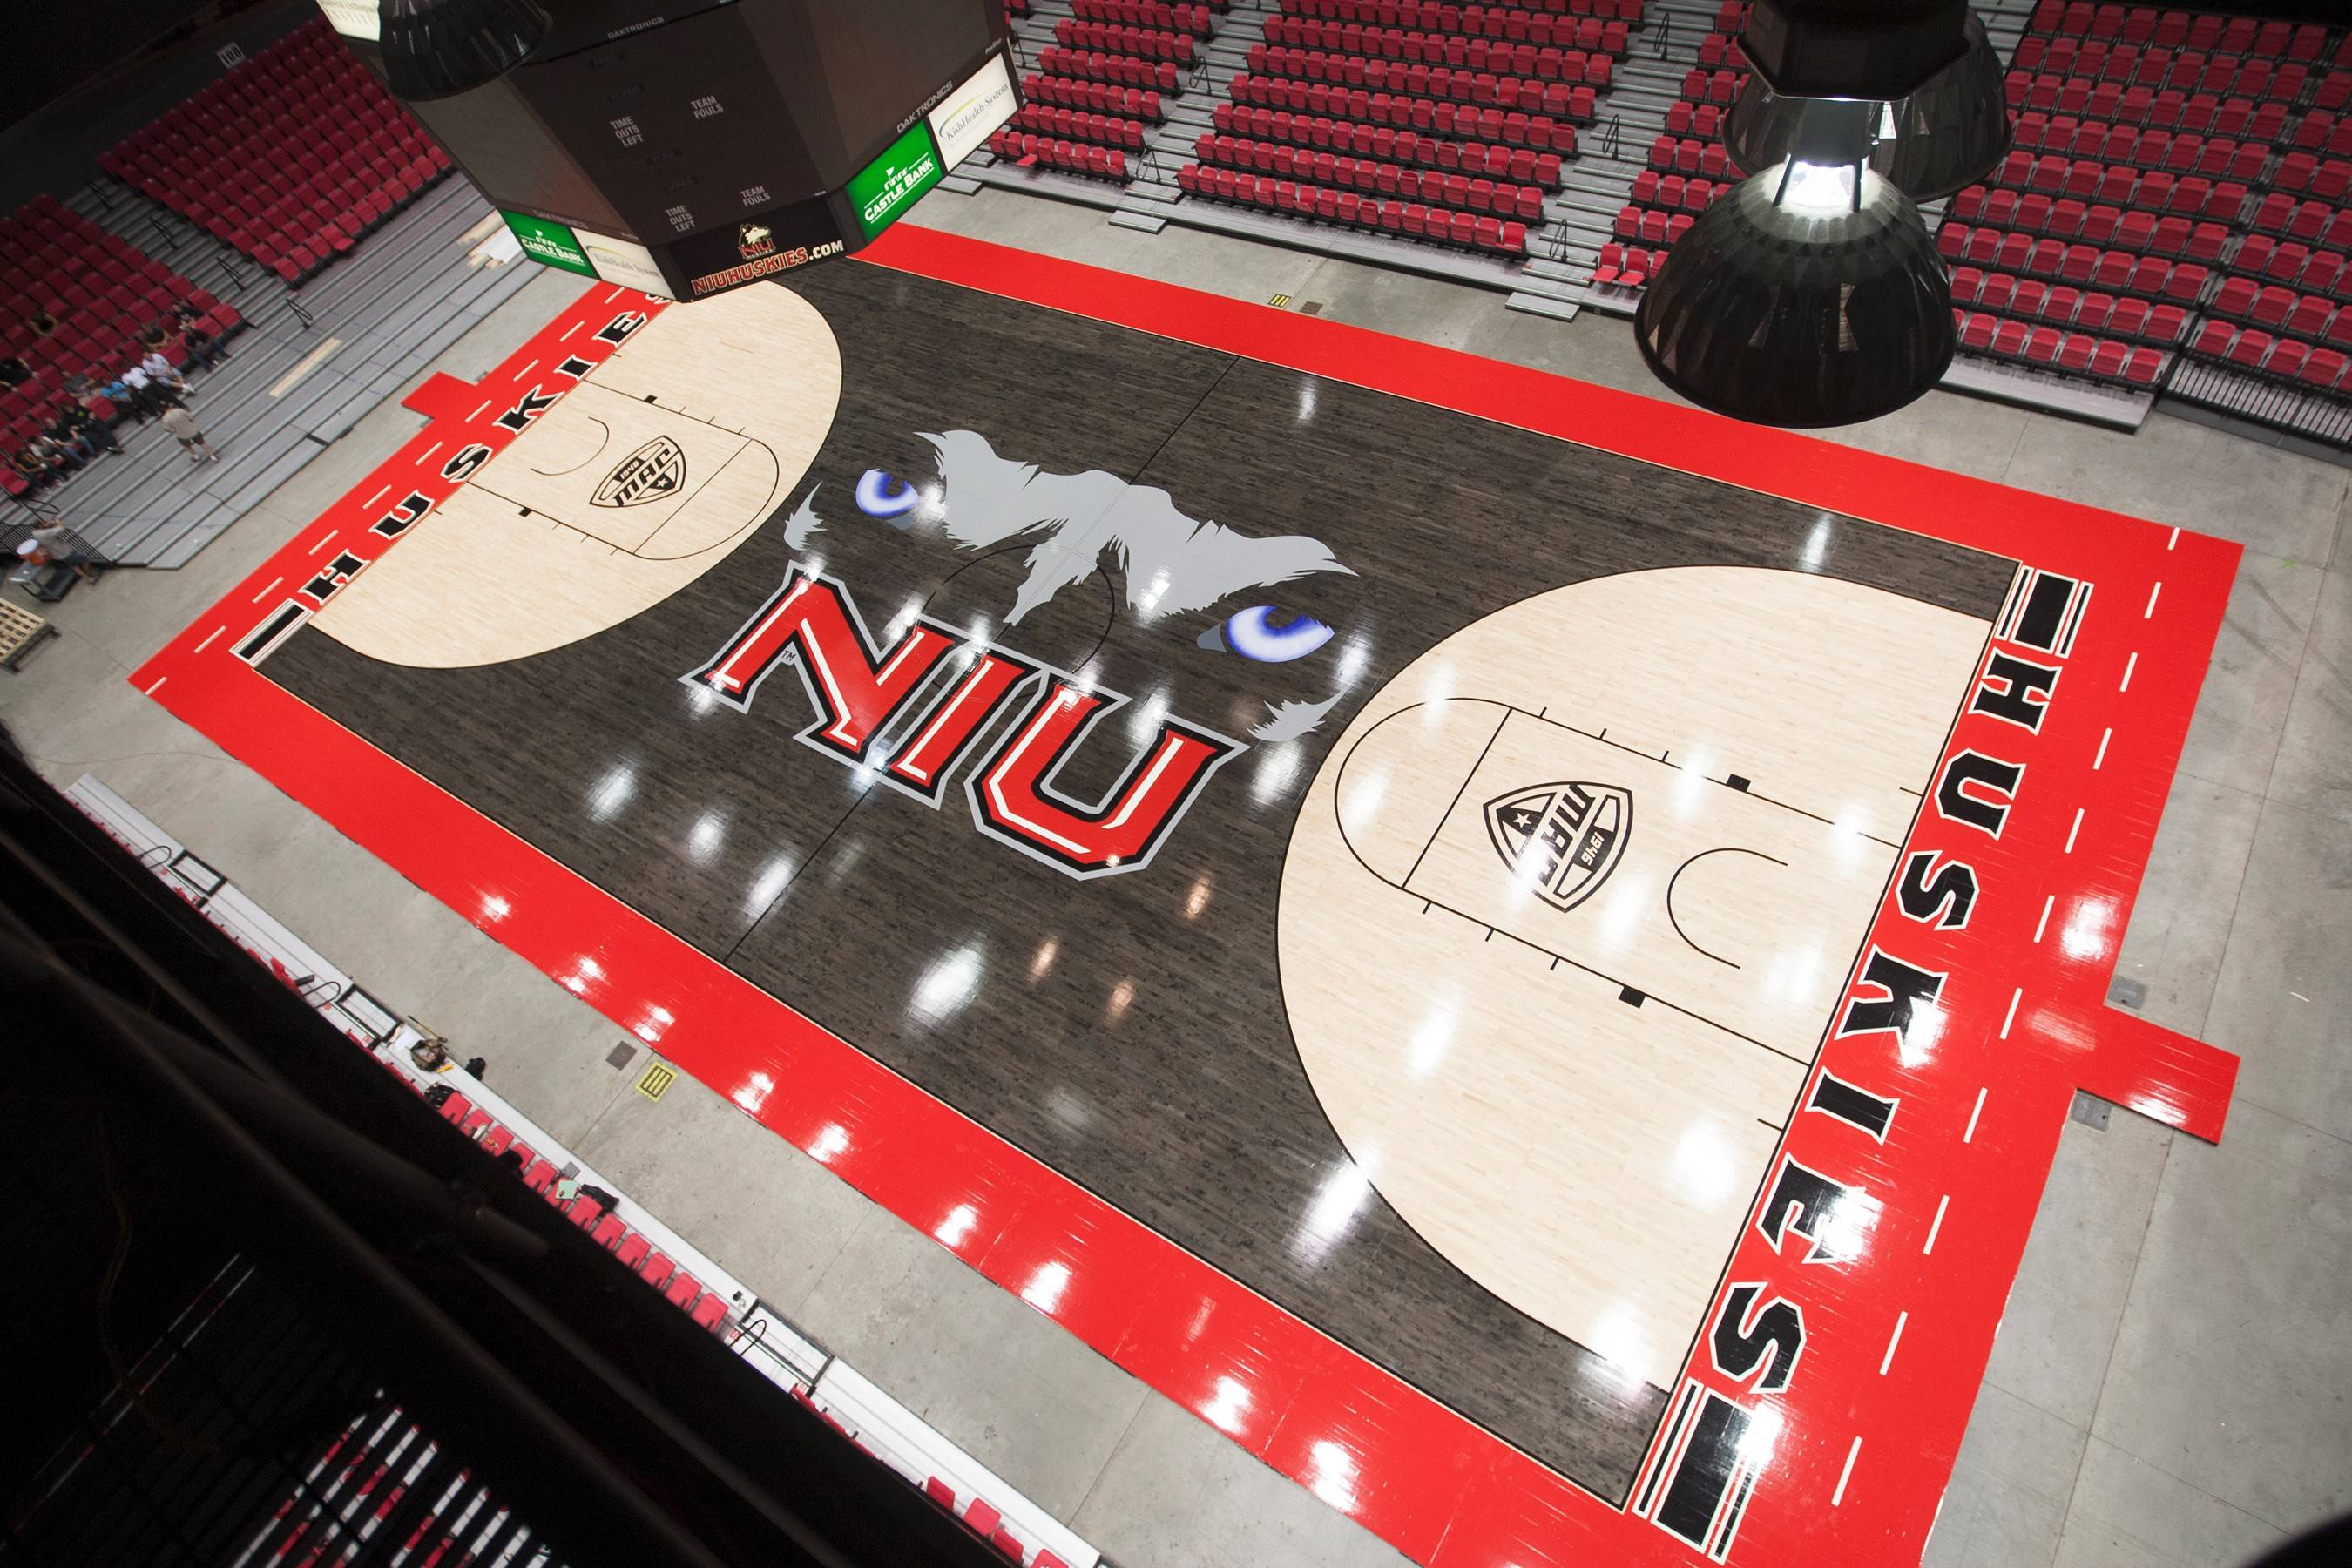 Here's a look at the design of the new basketball court installed at the Northern Illinois Univeristy Convocation Center.